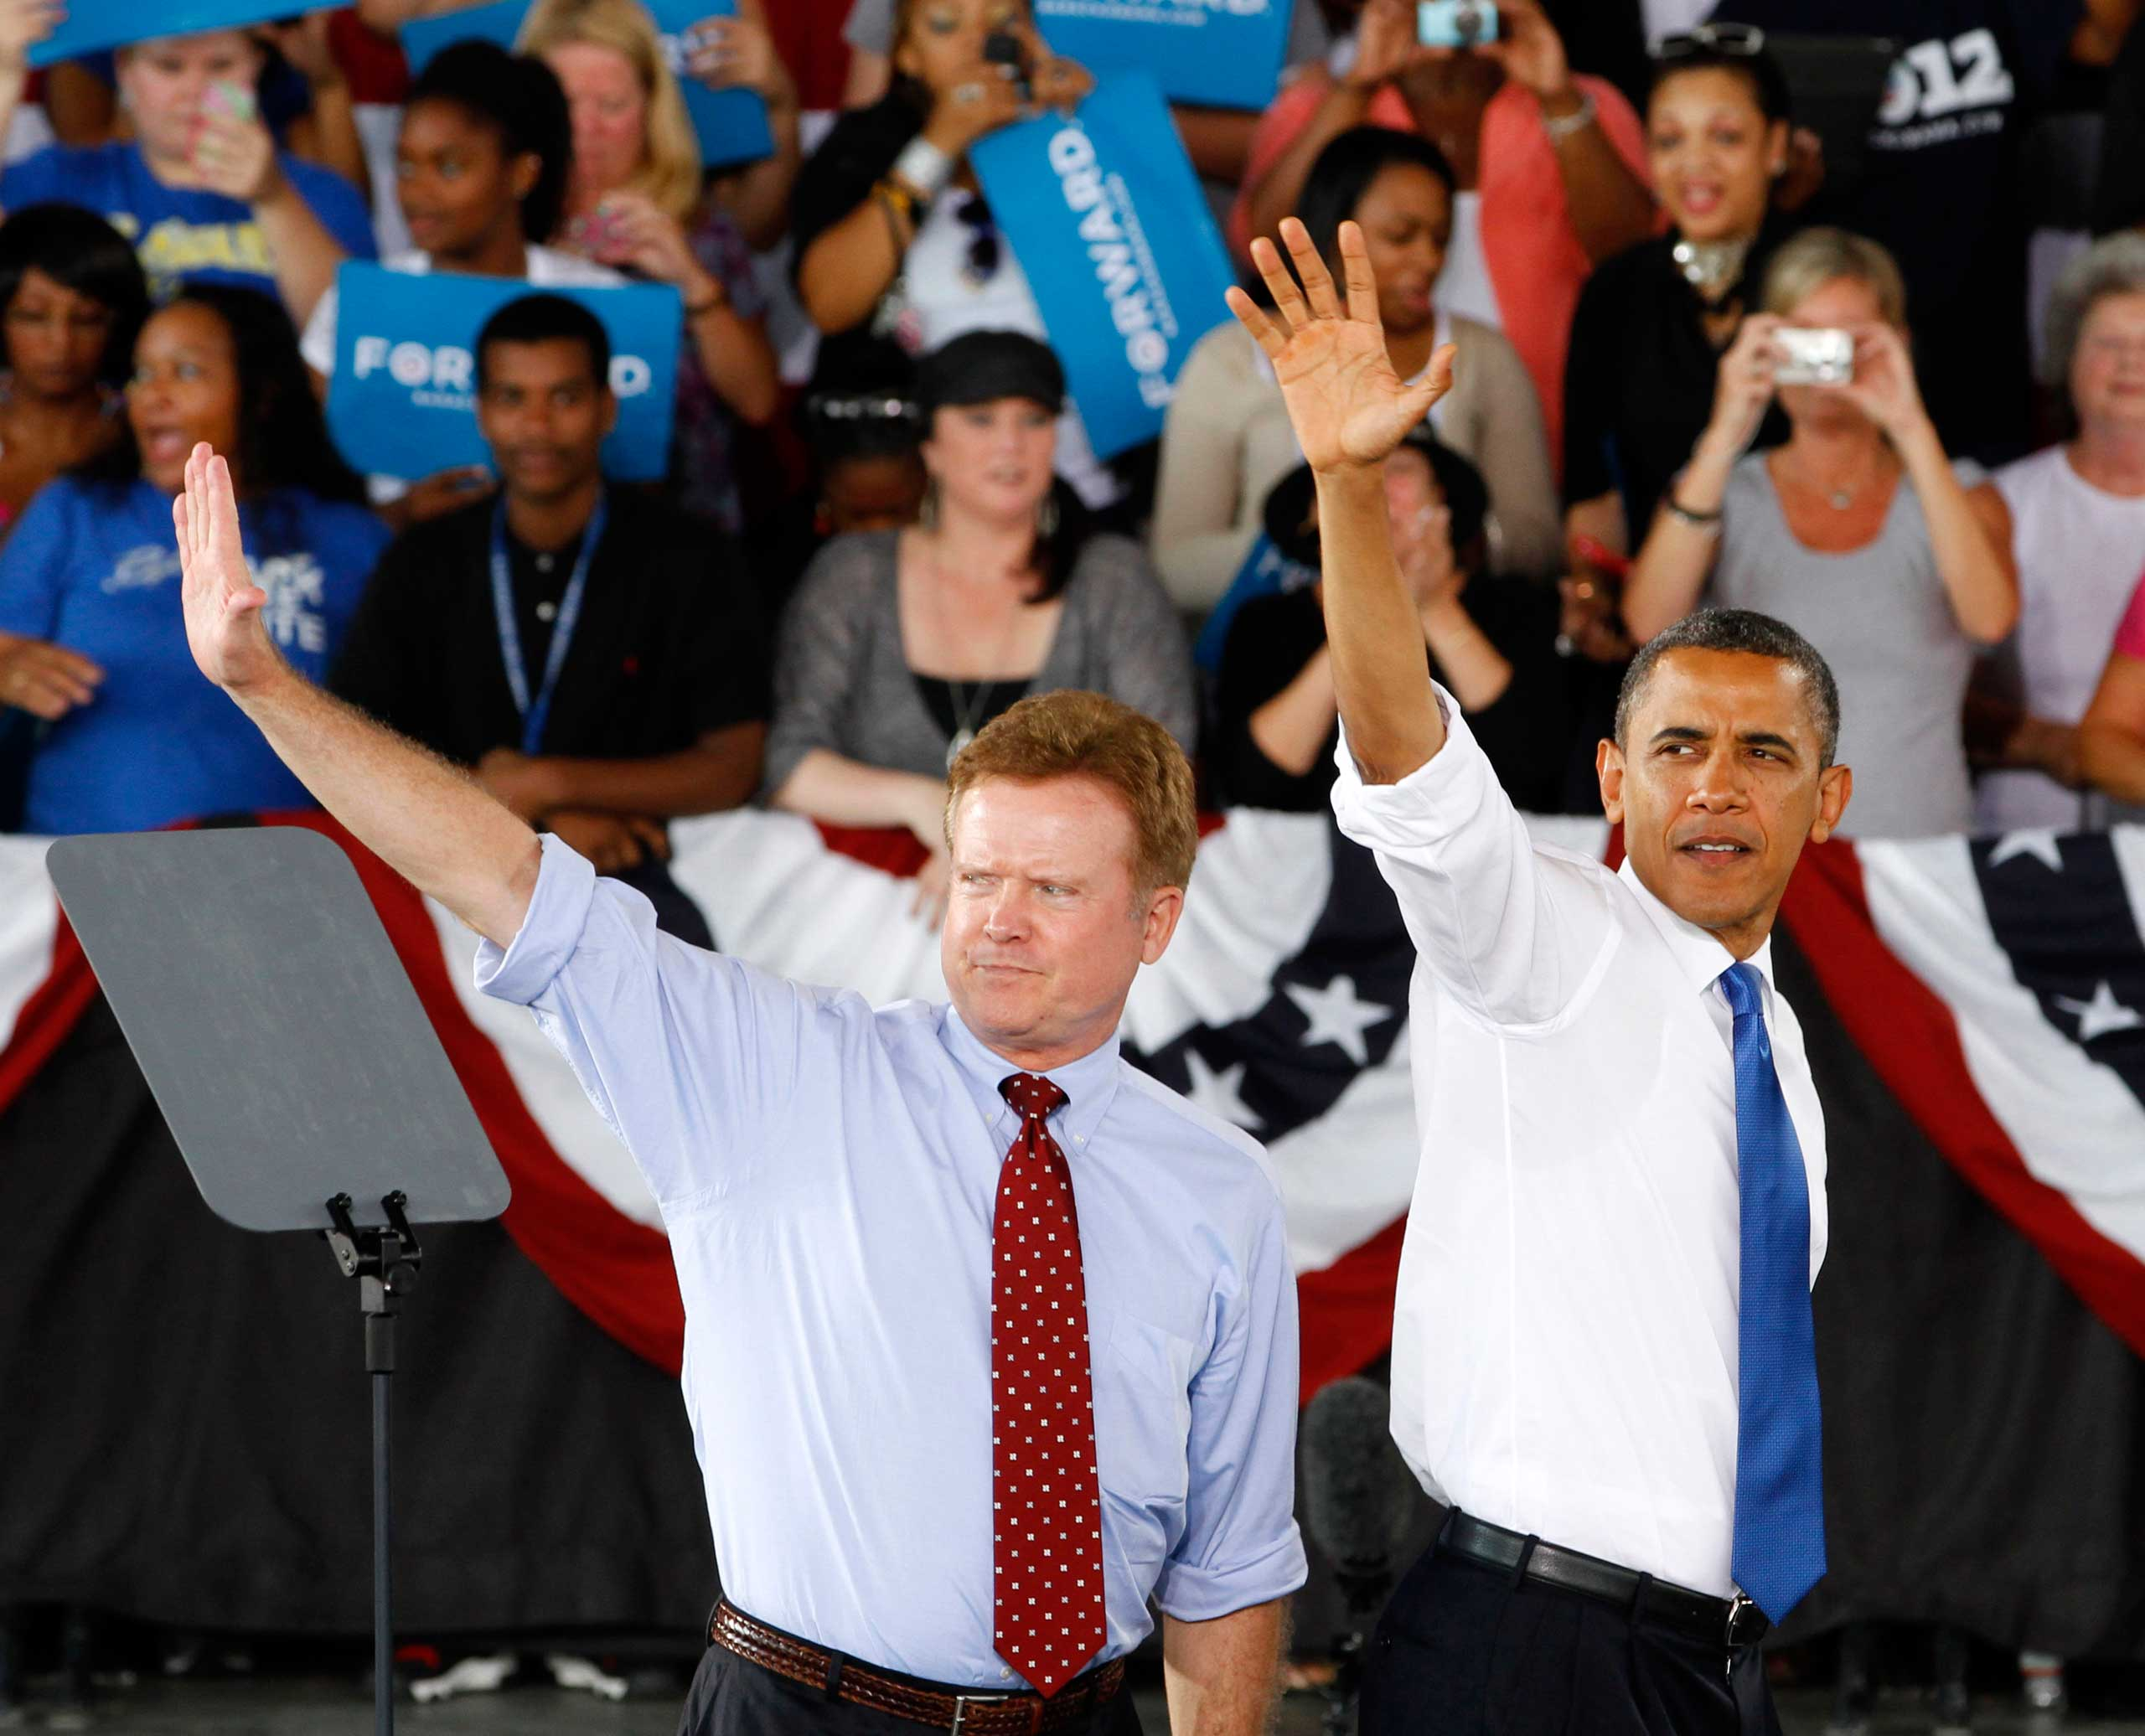 <b>Jim Webb</b> Retiring Sen. Jim Webb imitates the presidential wave during a rally in Virginia Beach, Va. on Sept. 27, 2012.